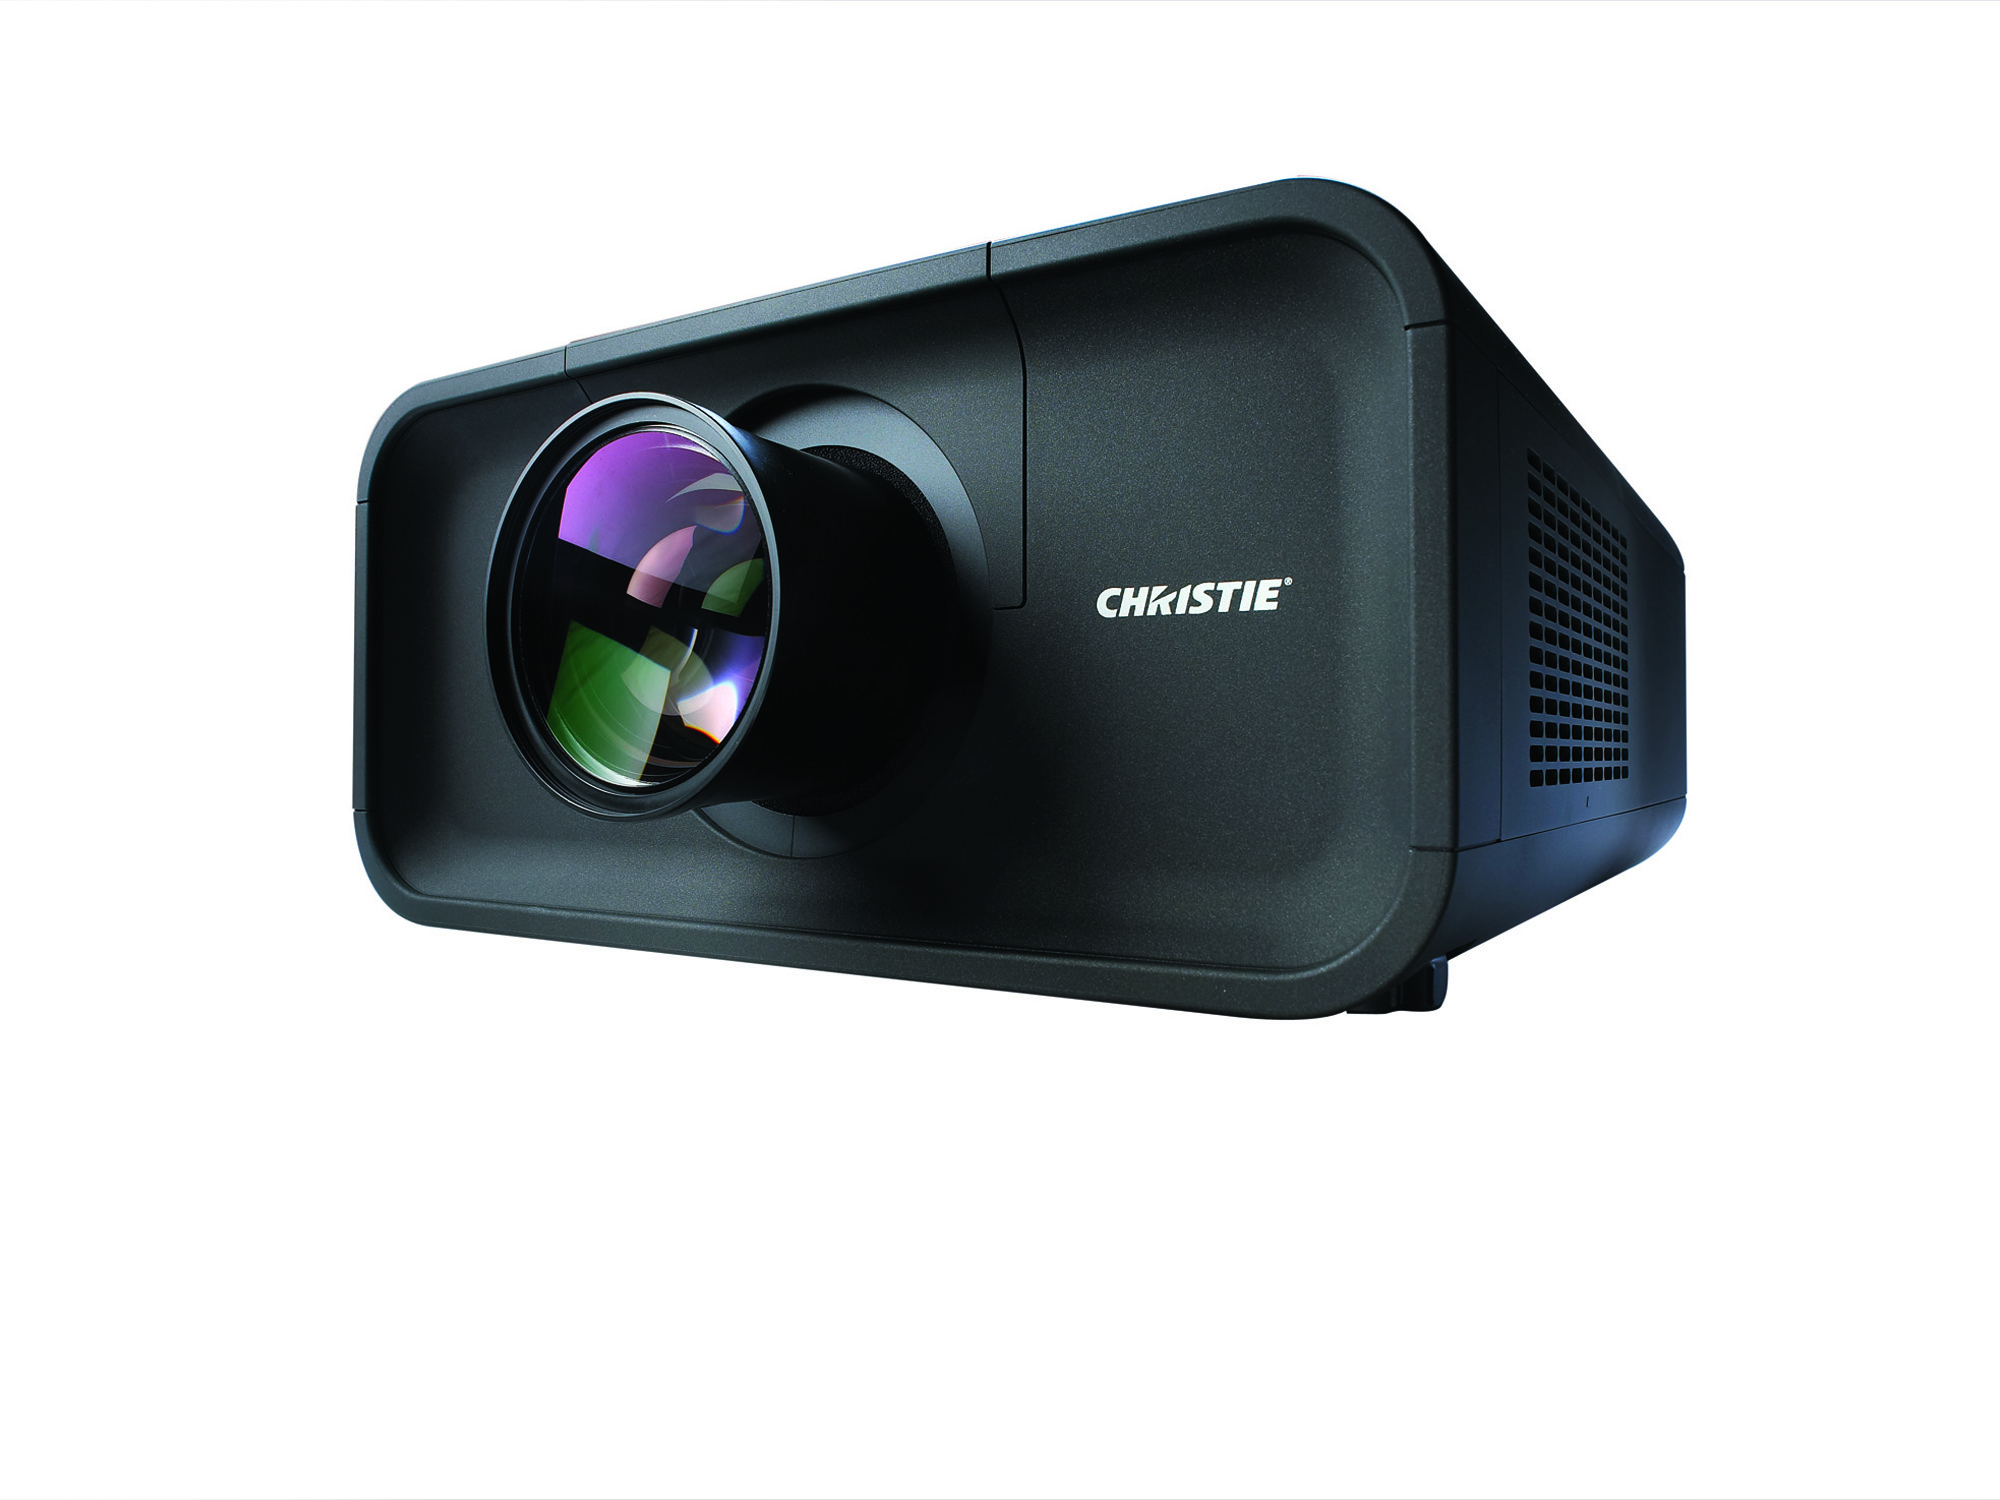 /globalassets/.catalog/products/images/christie-lx700/gallery/christie-lx700-lcd-digital-projector-lx700-lowright.jpg